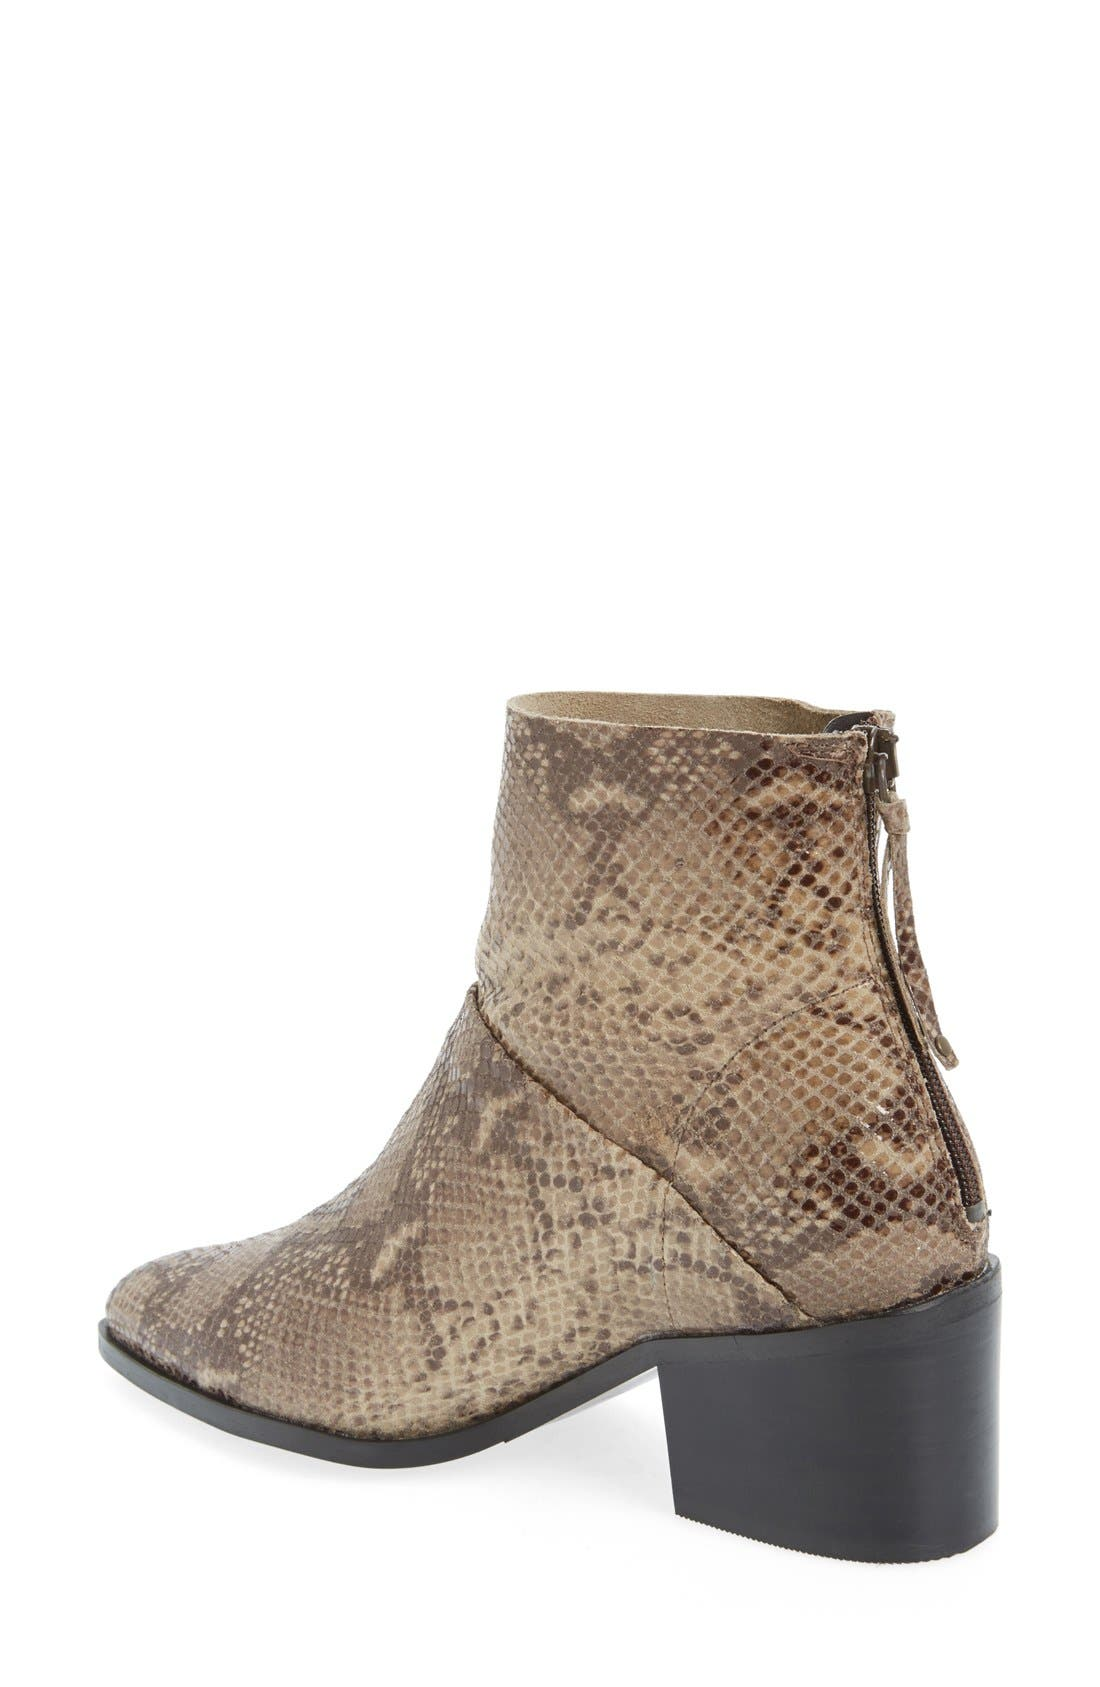 Alternate Image 2  - Topshop 'Midnight' Snake Embossed Ankle Boot (Women)